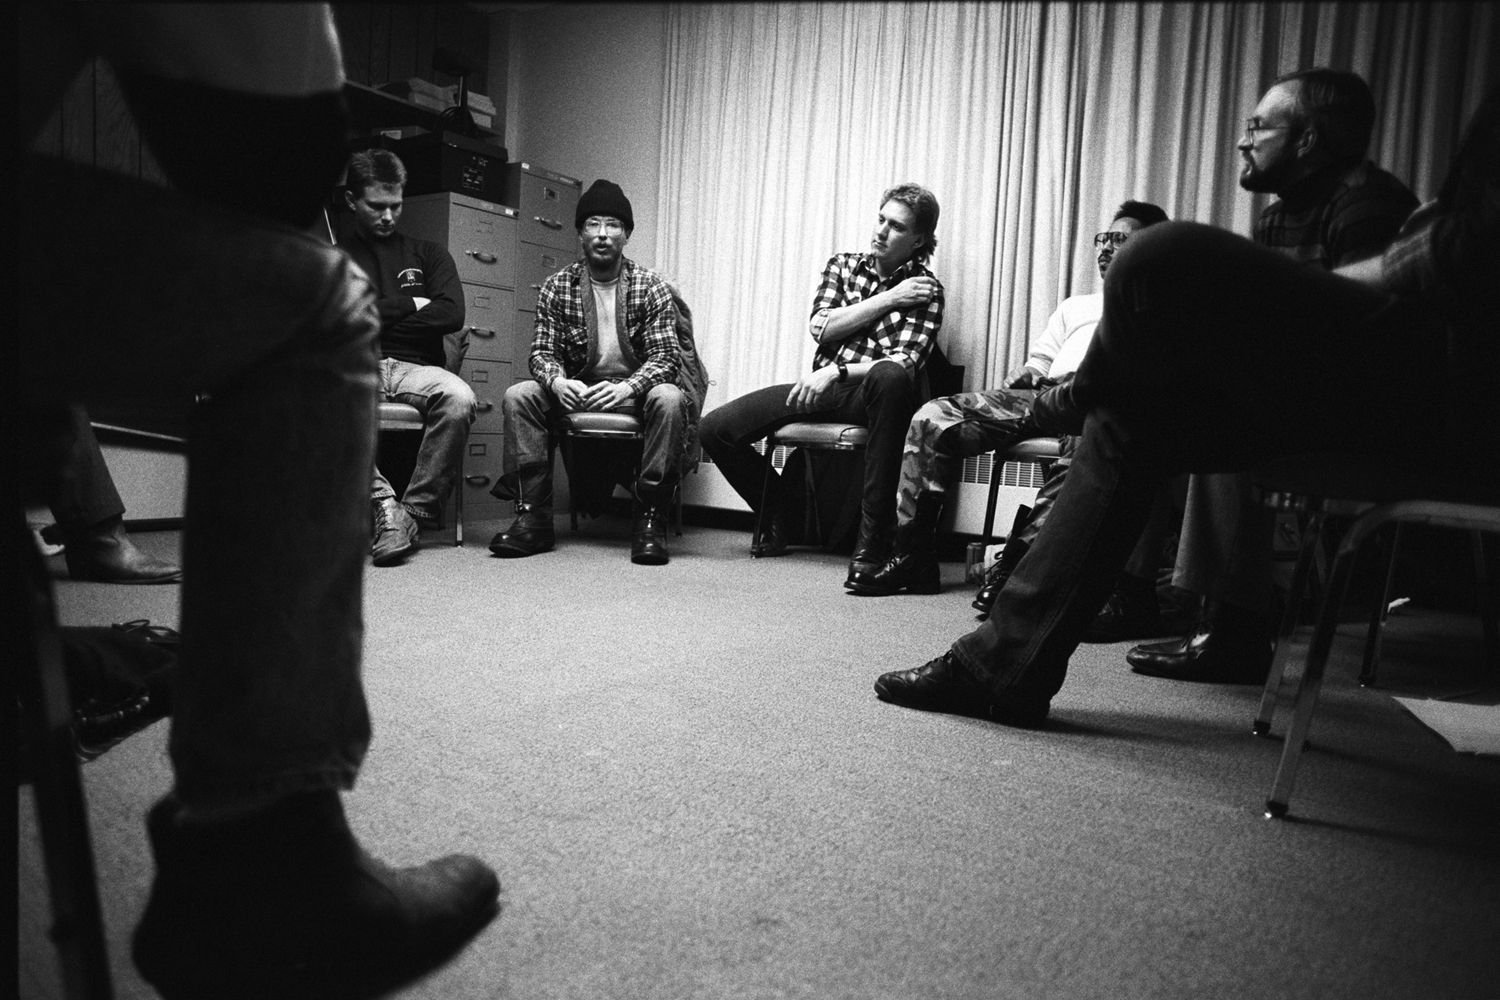 Counseling programs for abusive men teach them to take responsibility for their behavior, and to change it. Denver, 1986.